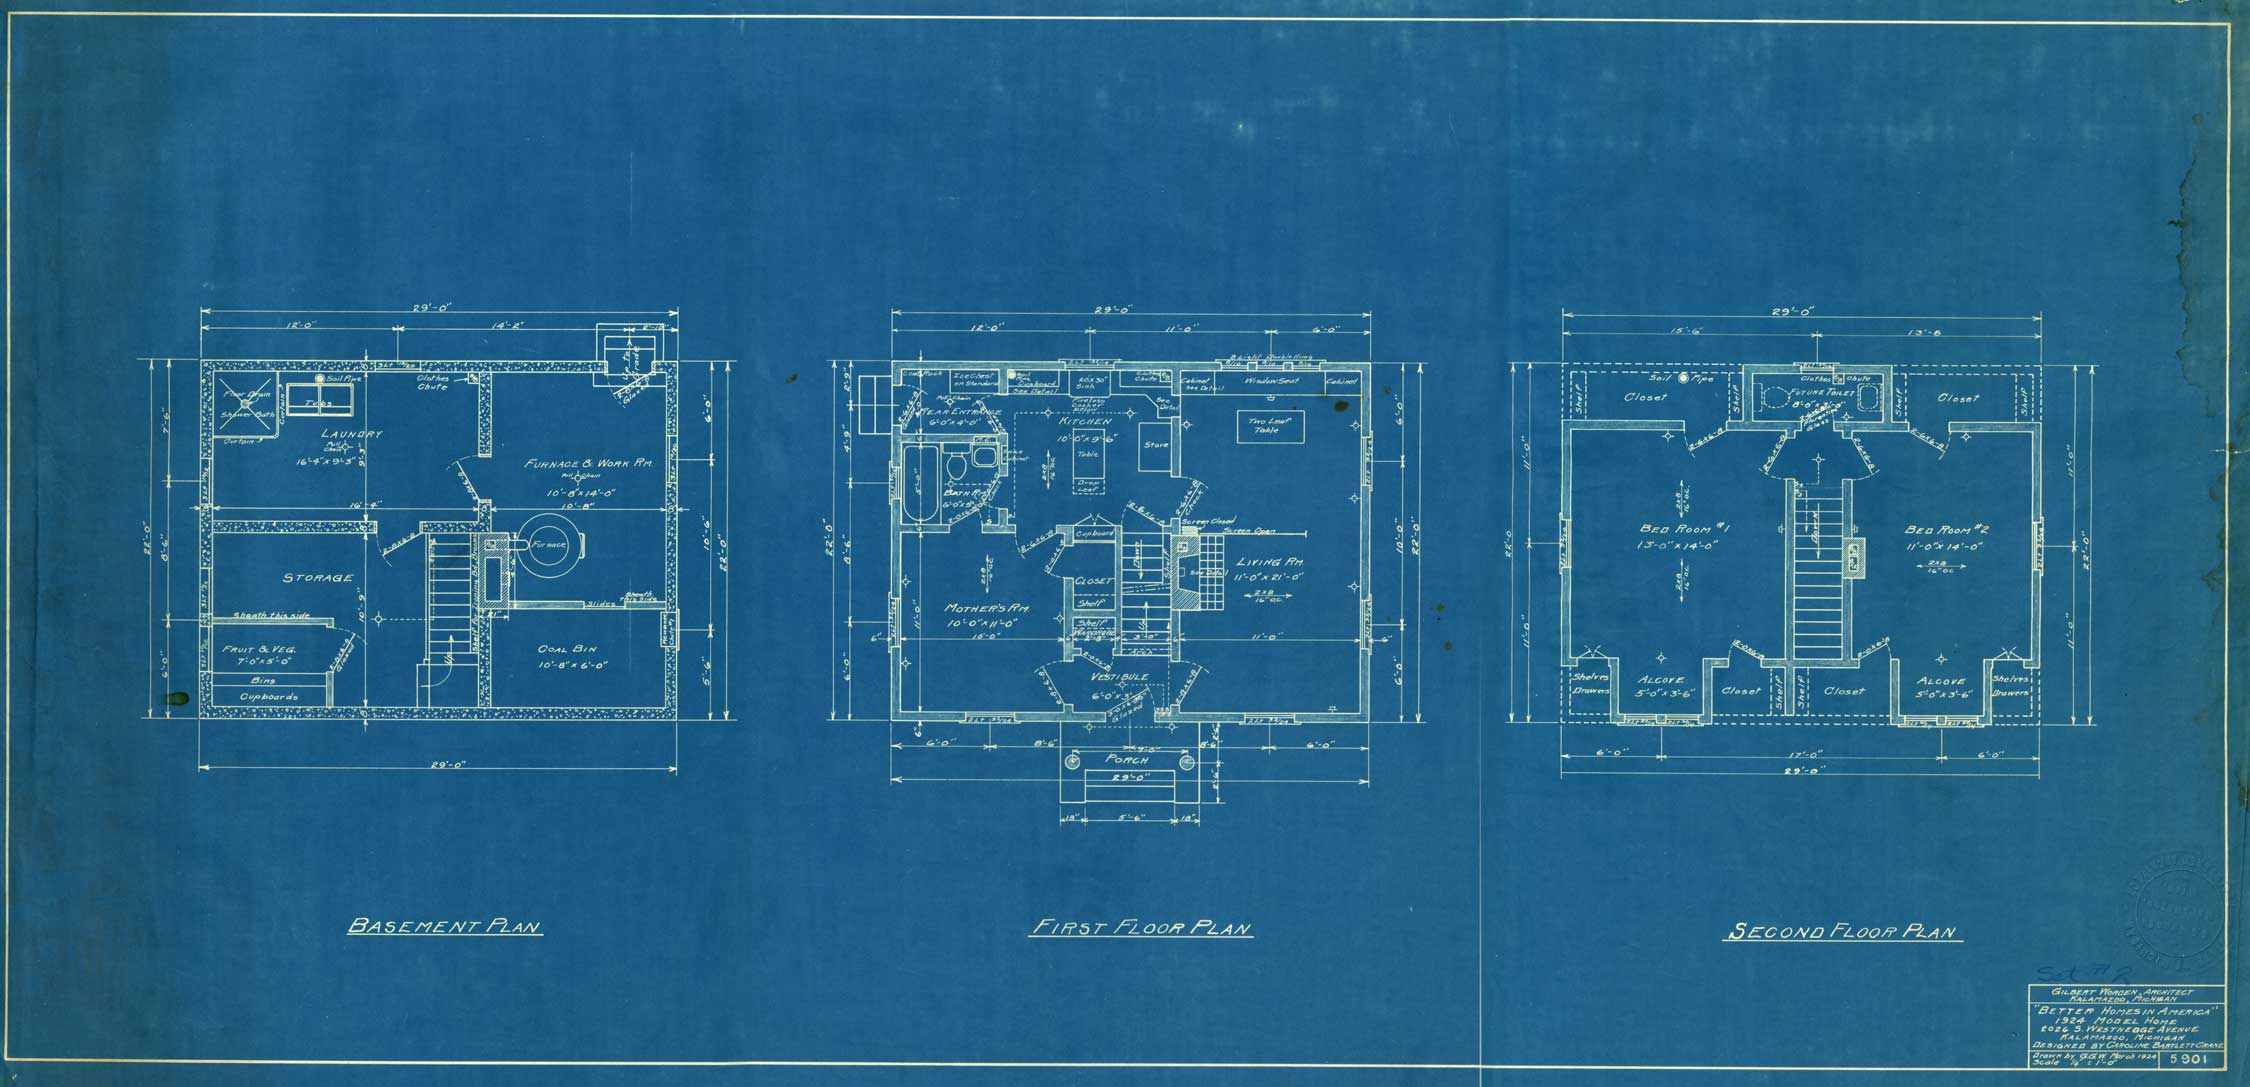 The making of modern michigan digitizing michigan 39 s for Architecture blueprints